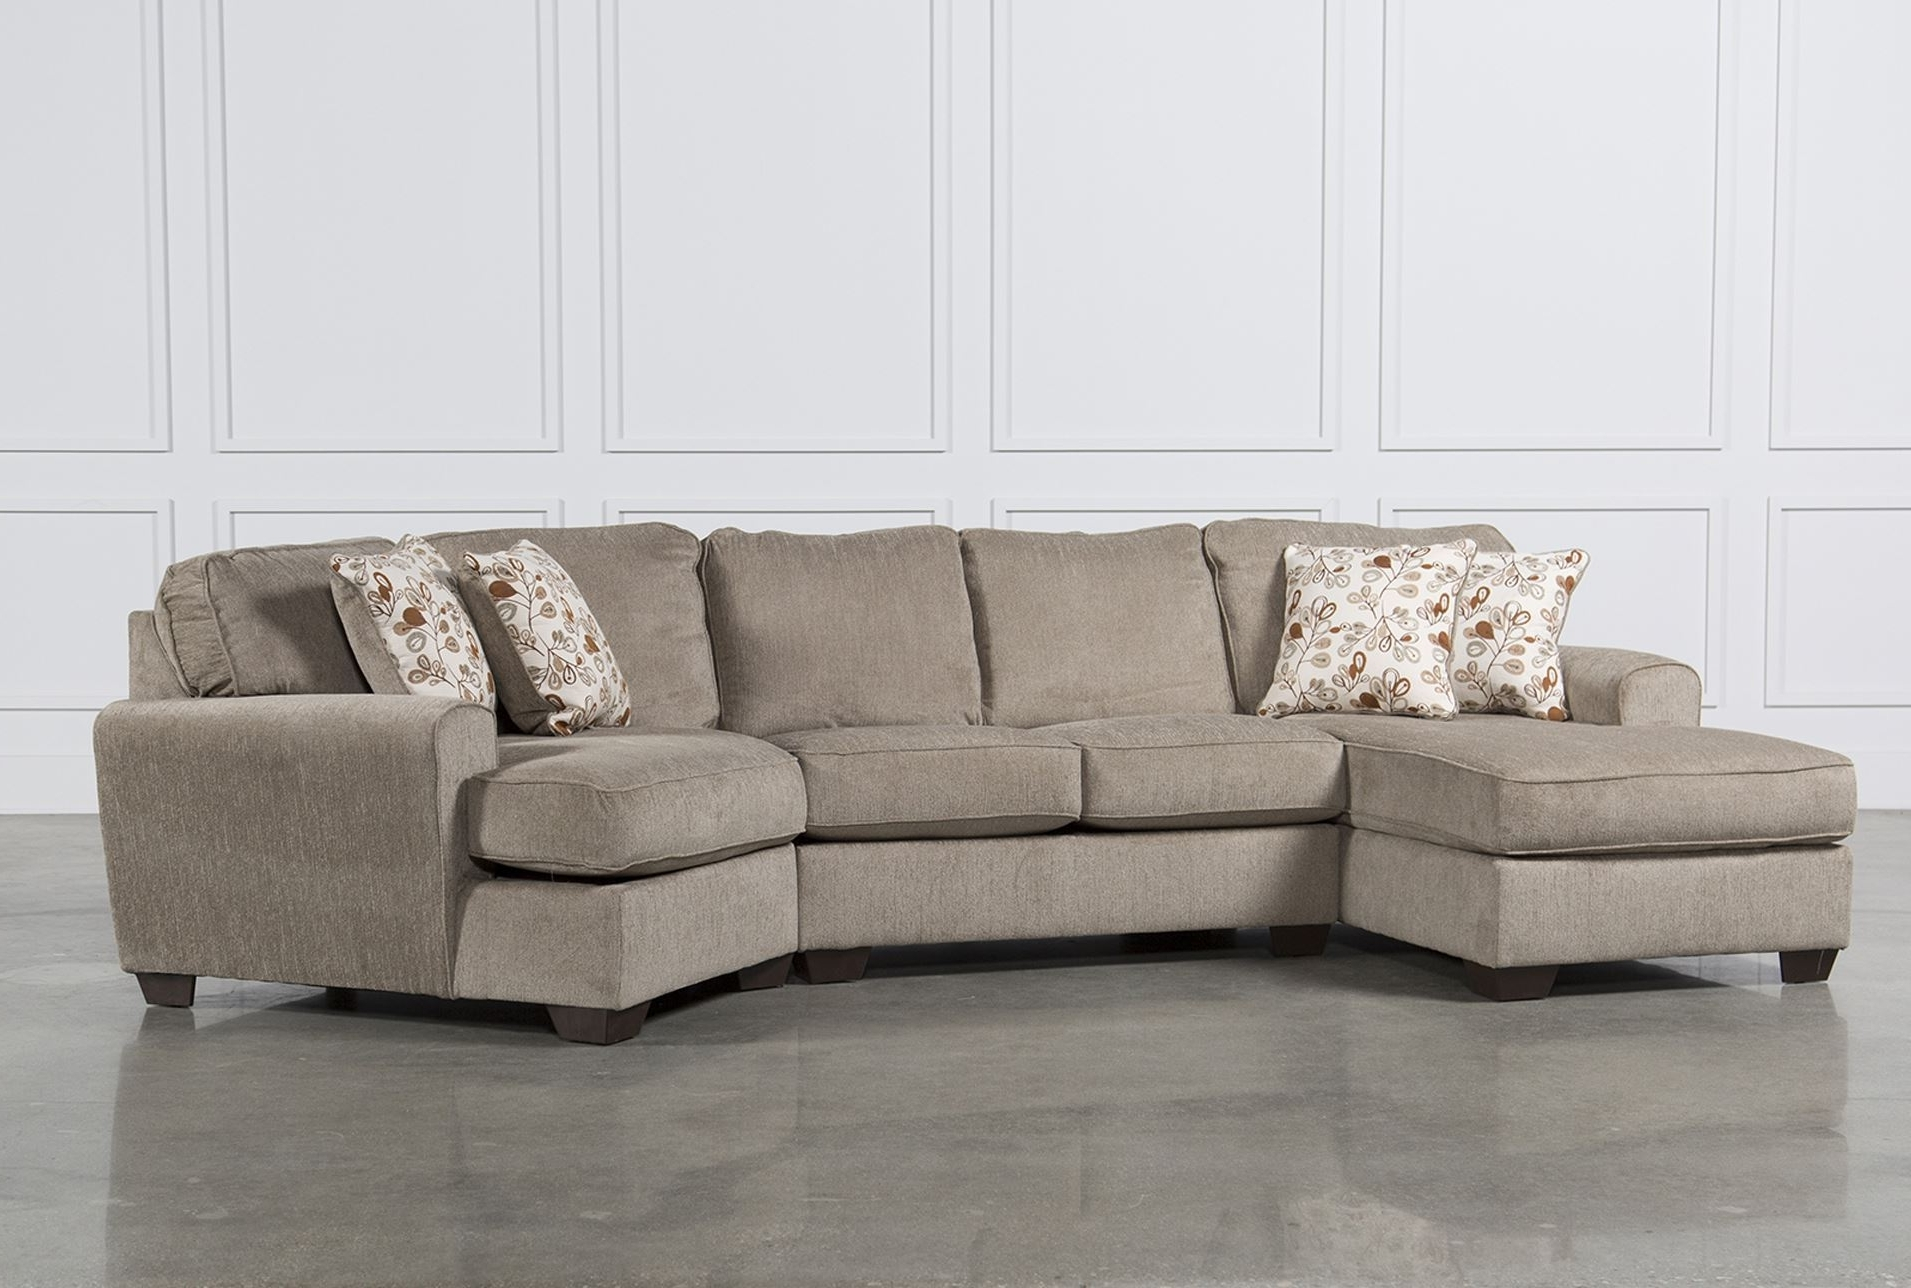 Cuddler Sectional Sofas Regarding Best And Newest Fancy Sectional Sofa With Cuddler 52 For Contemporary Sofa (View 4 of 15)